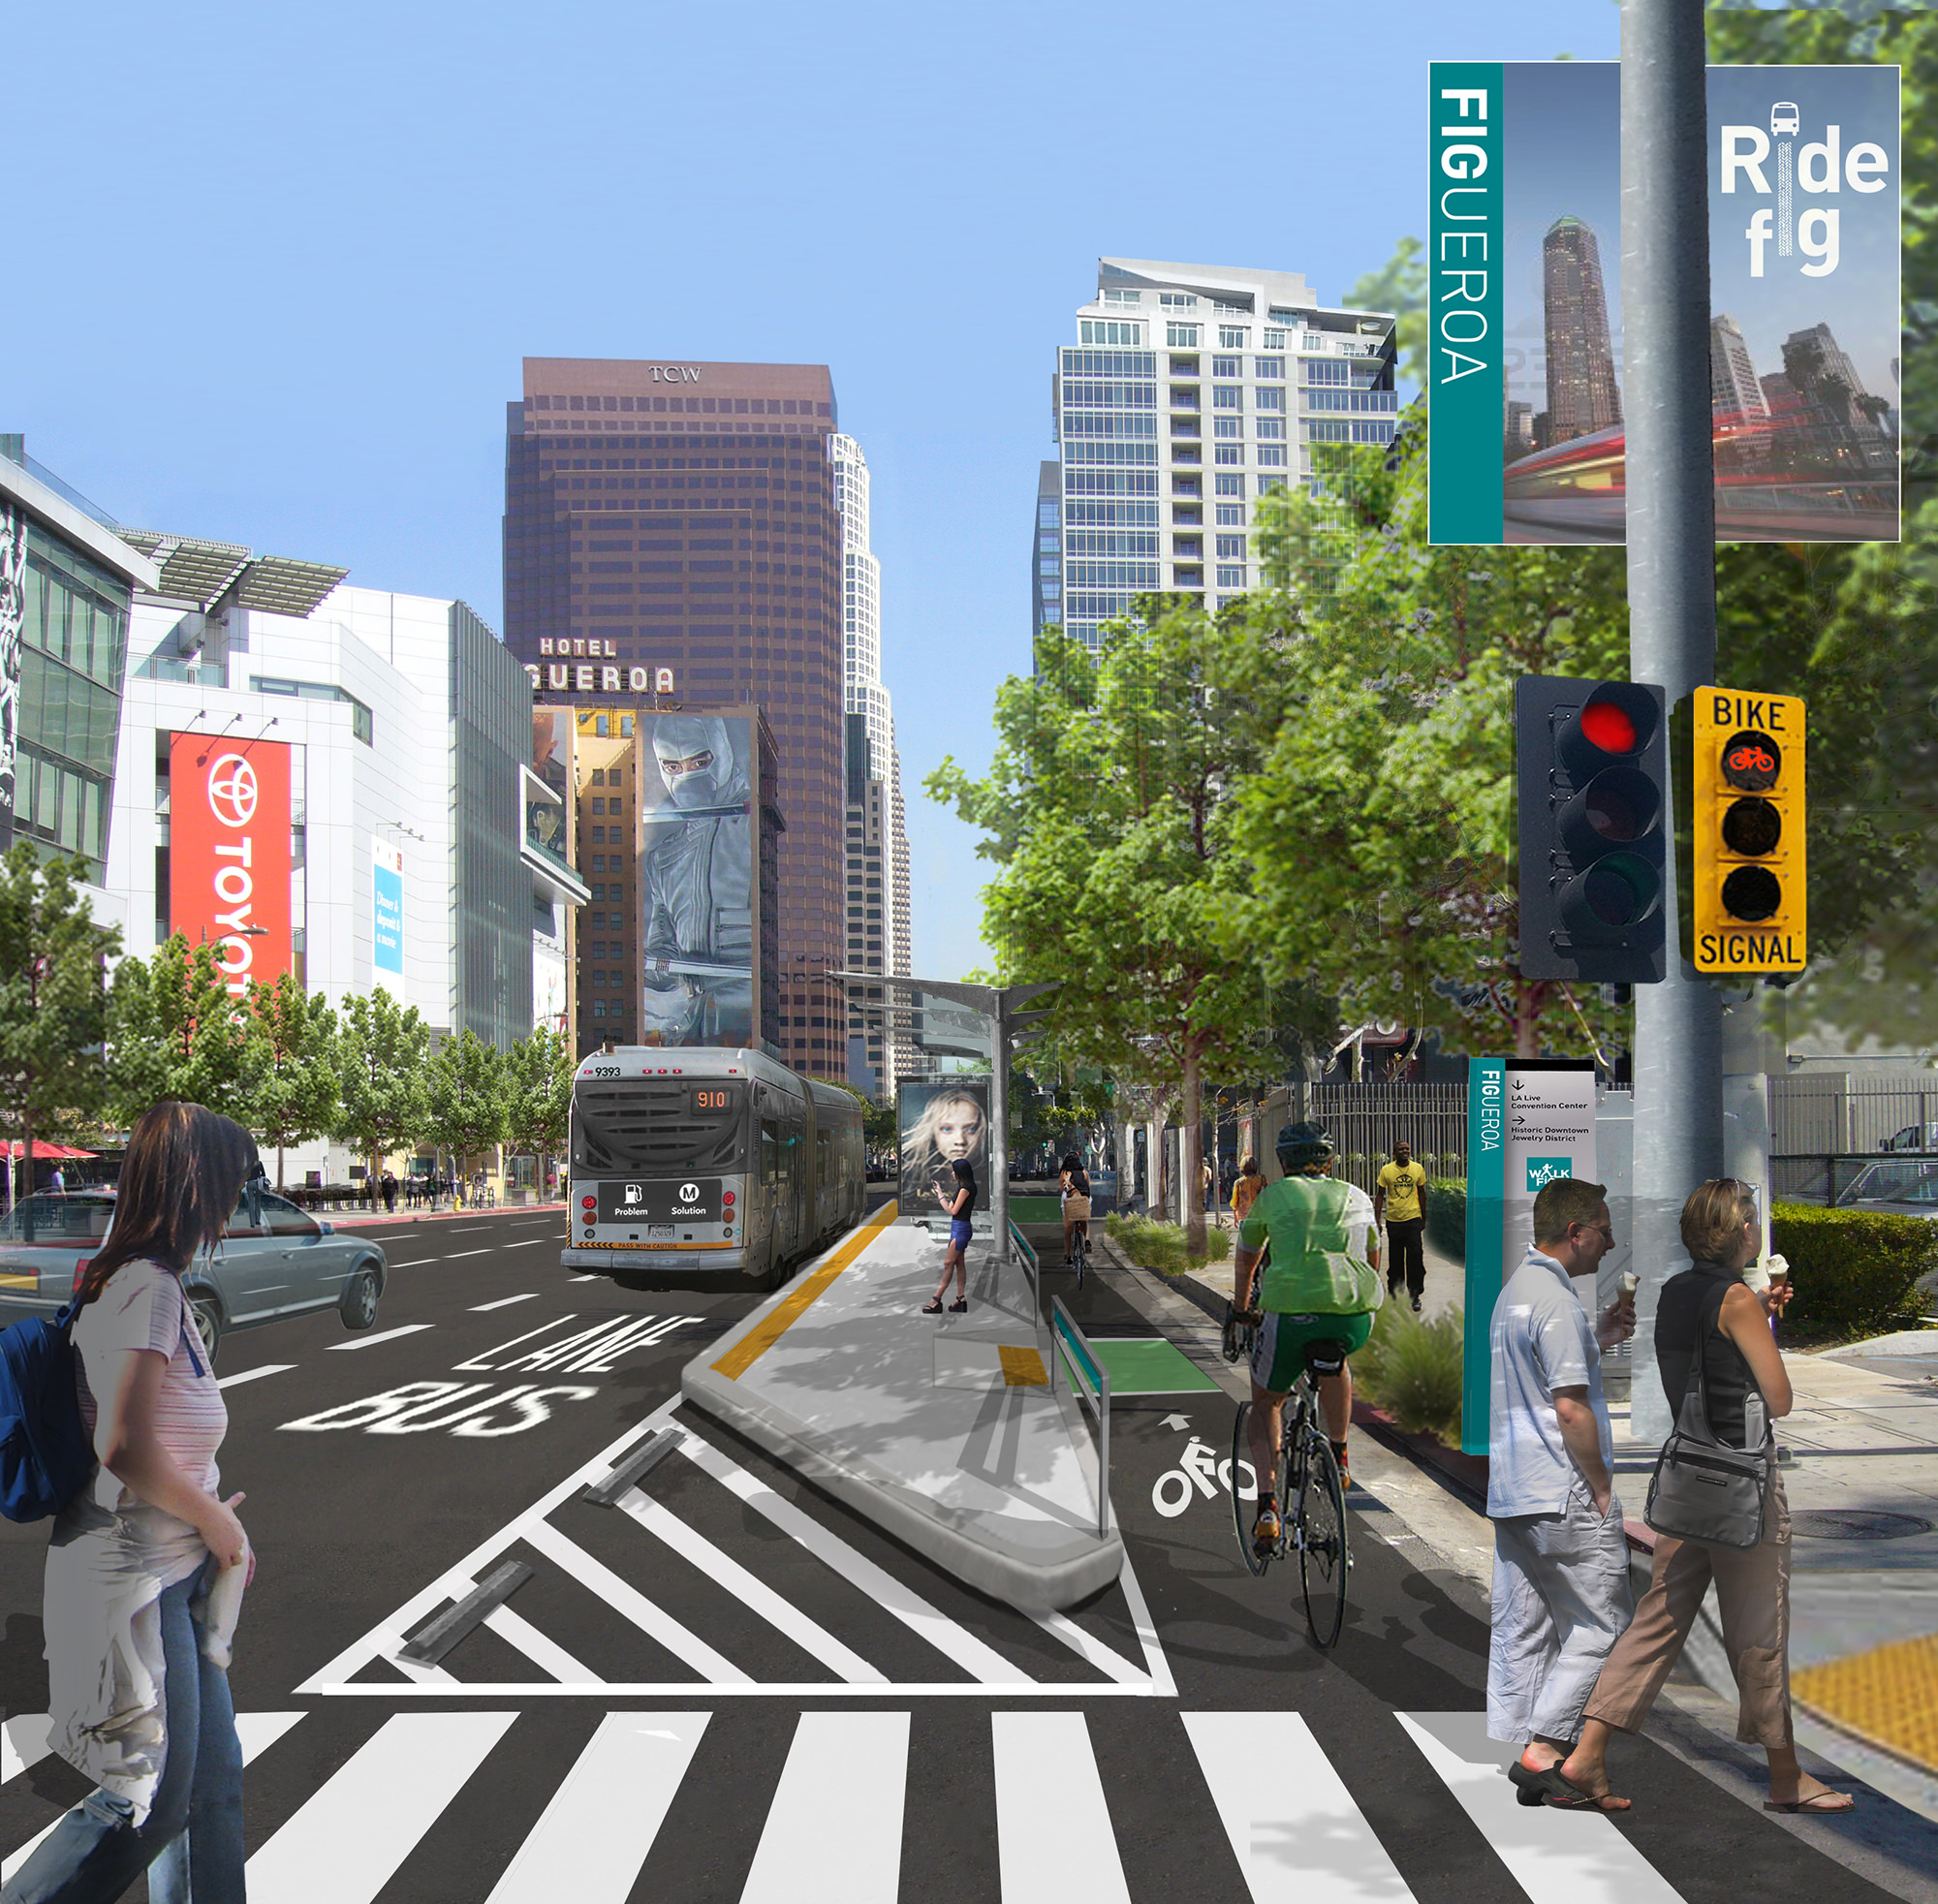 Rendering of the Figuroa and 11th intersection in Los Angeles following Bloomberg Associates transportation discipline work